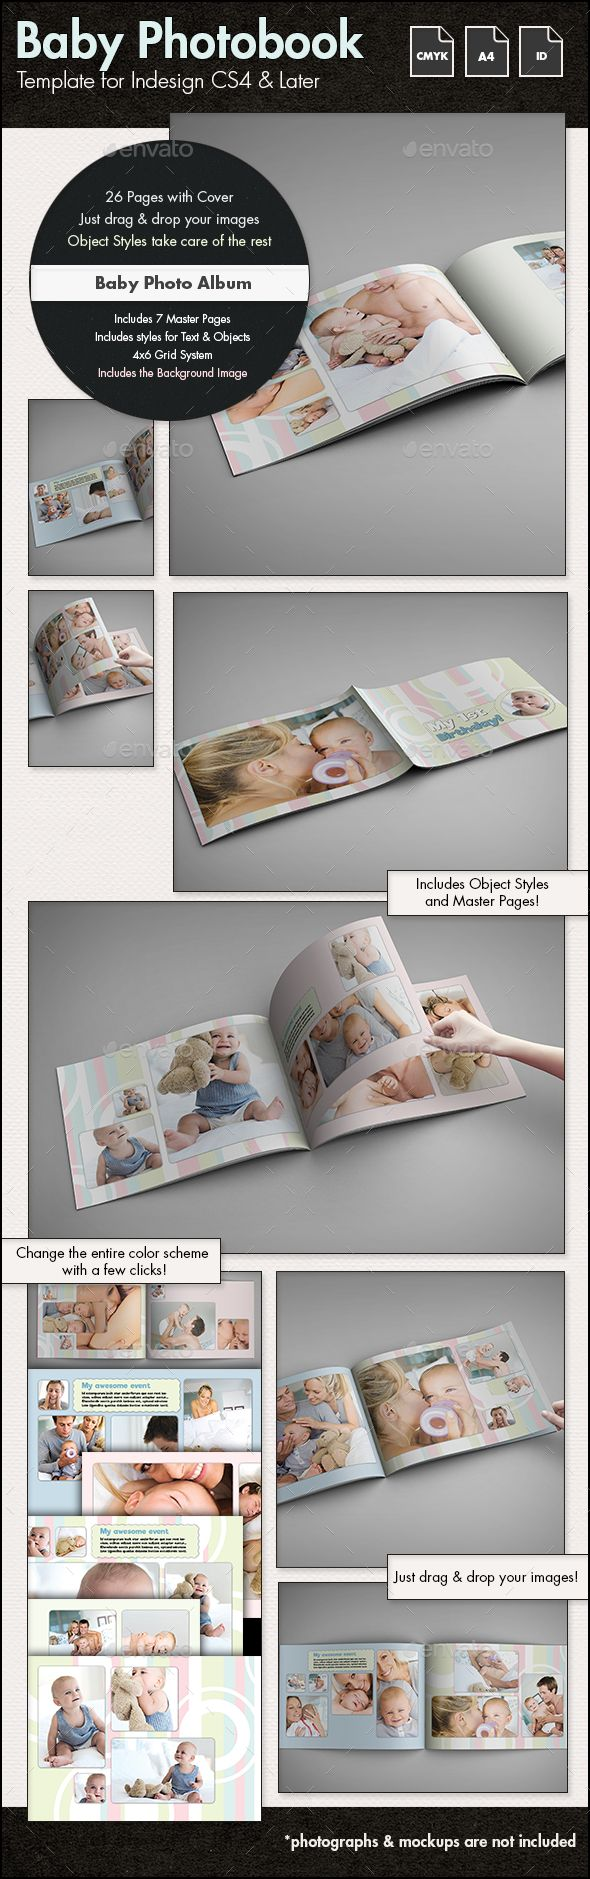 307 best Photo Album Templates images on Pinterest | Font logo ...